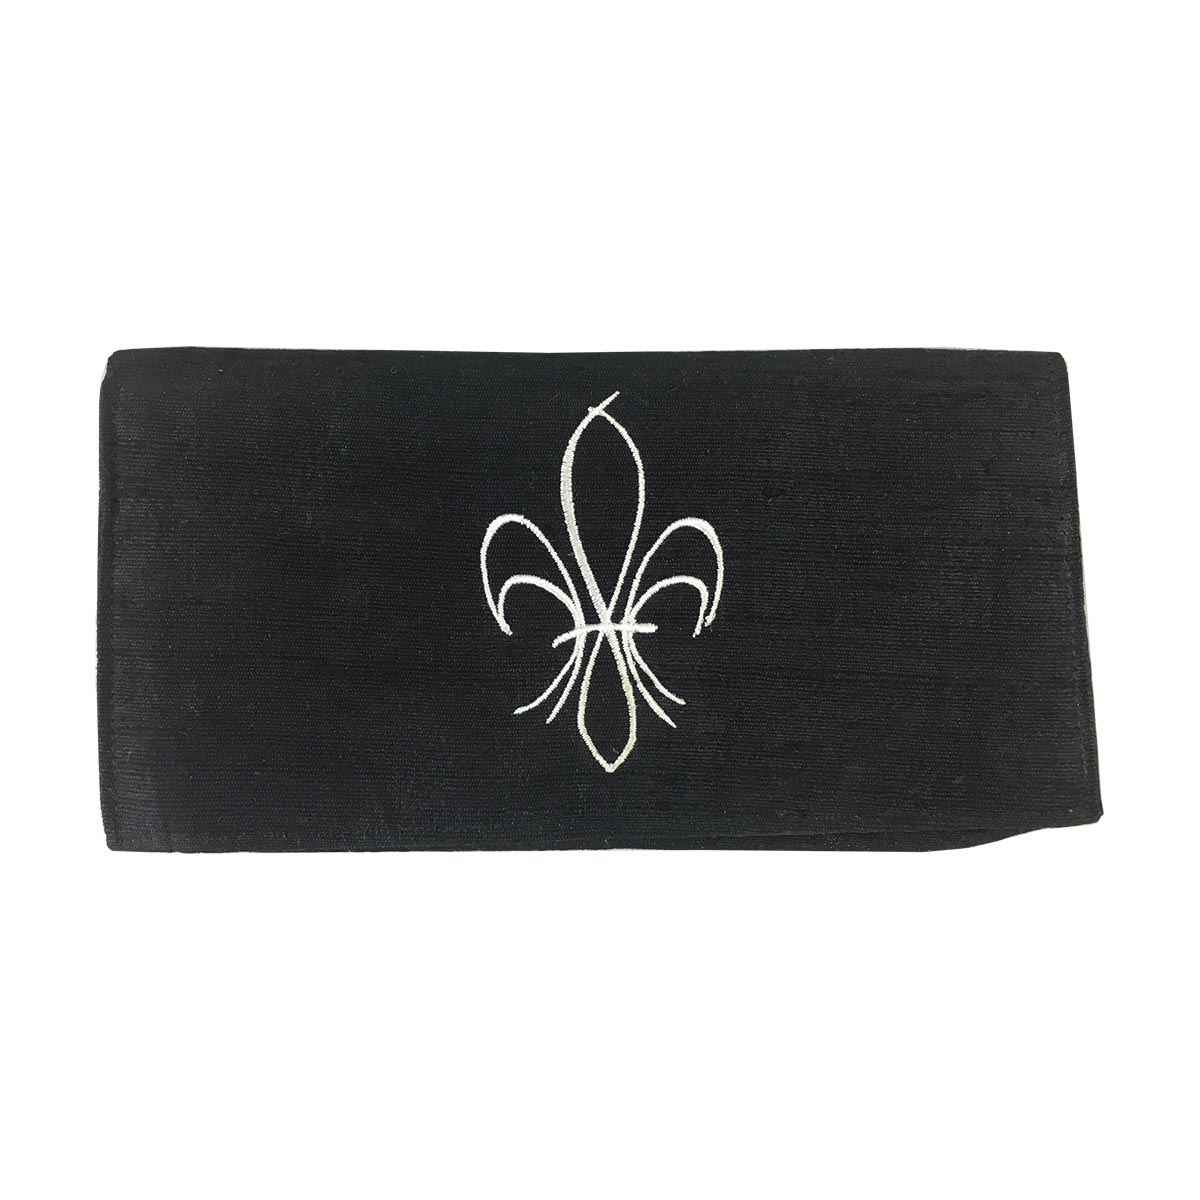 fleur de lis silk make-up pouch